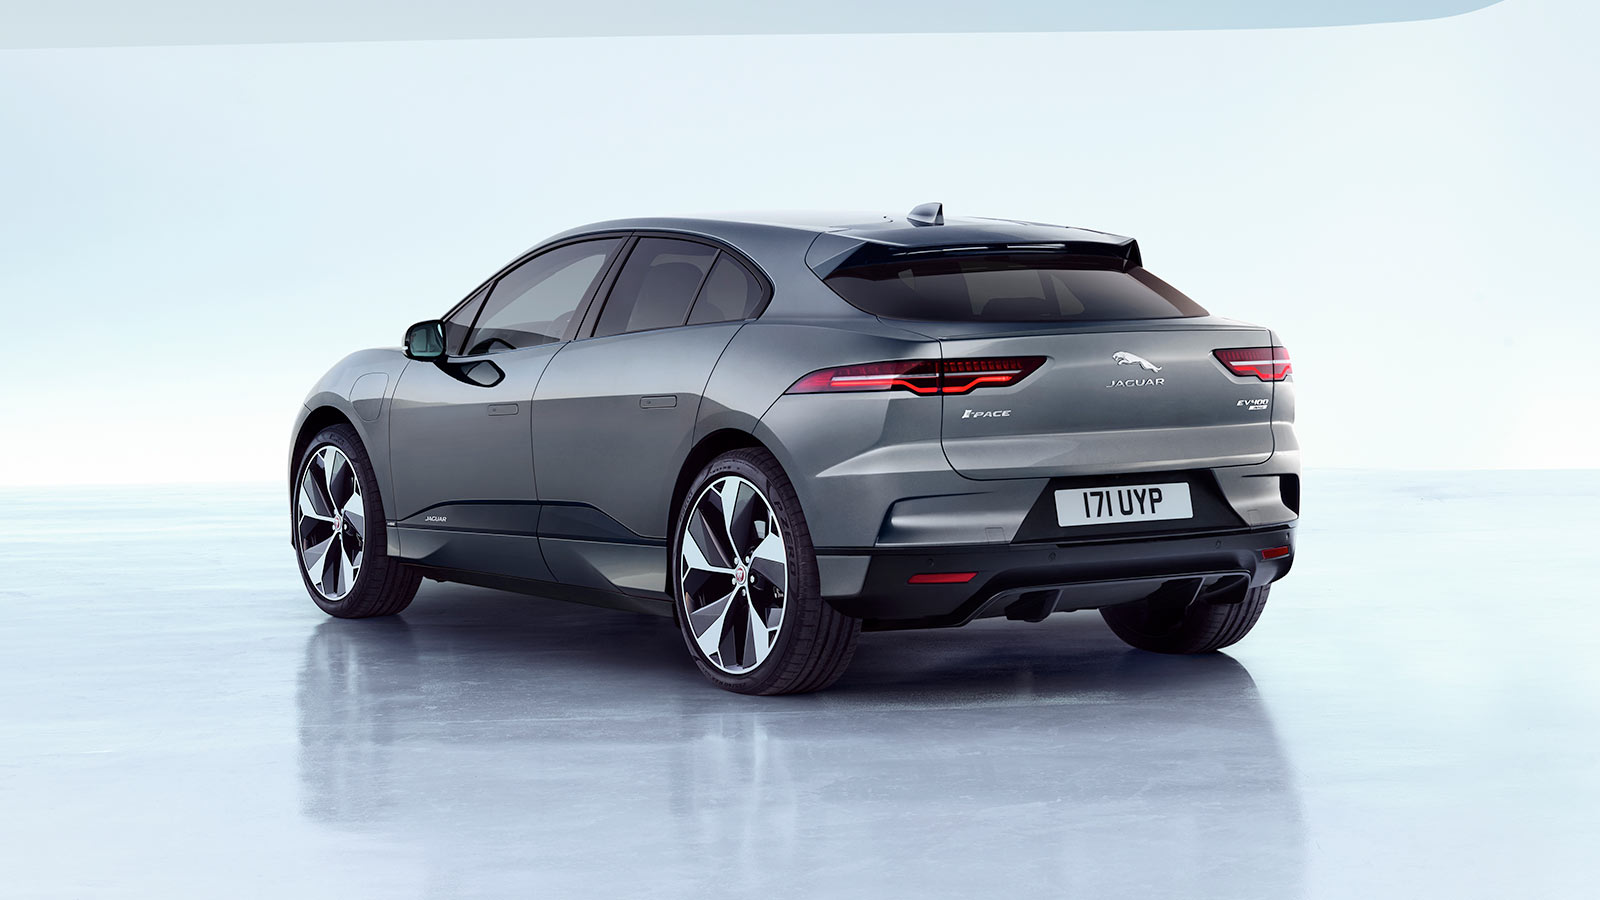 Jaguar I-PACE 90kWh EV400 First Edition SPECIAL EDITION image 9